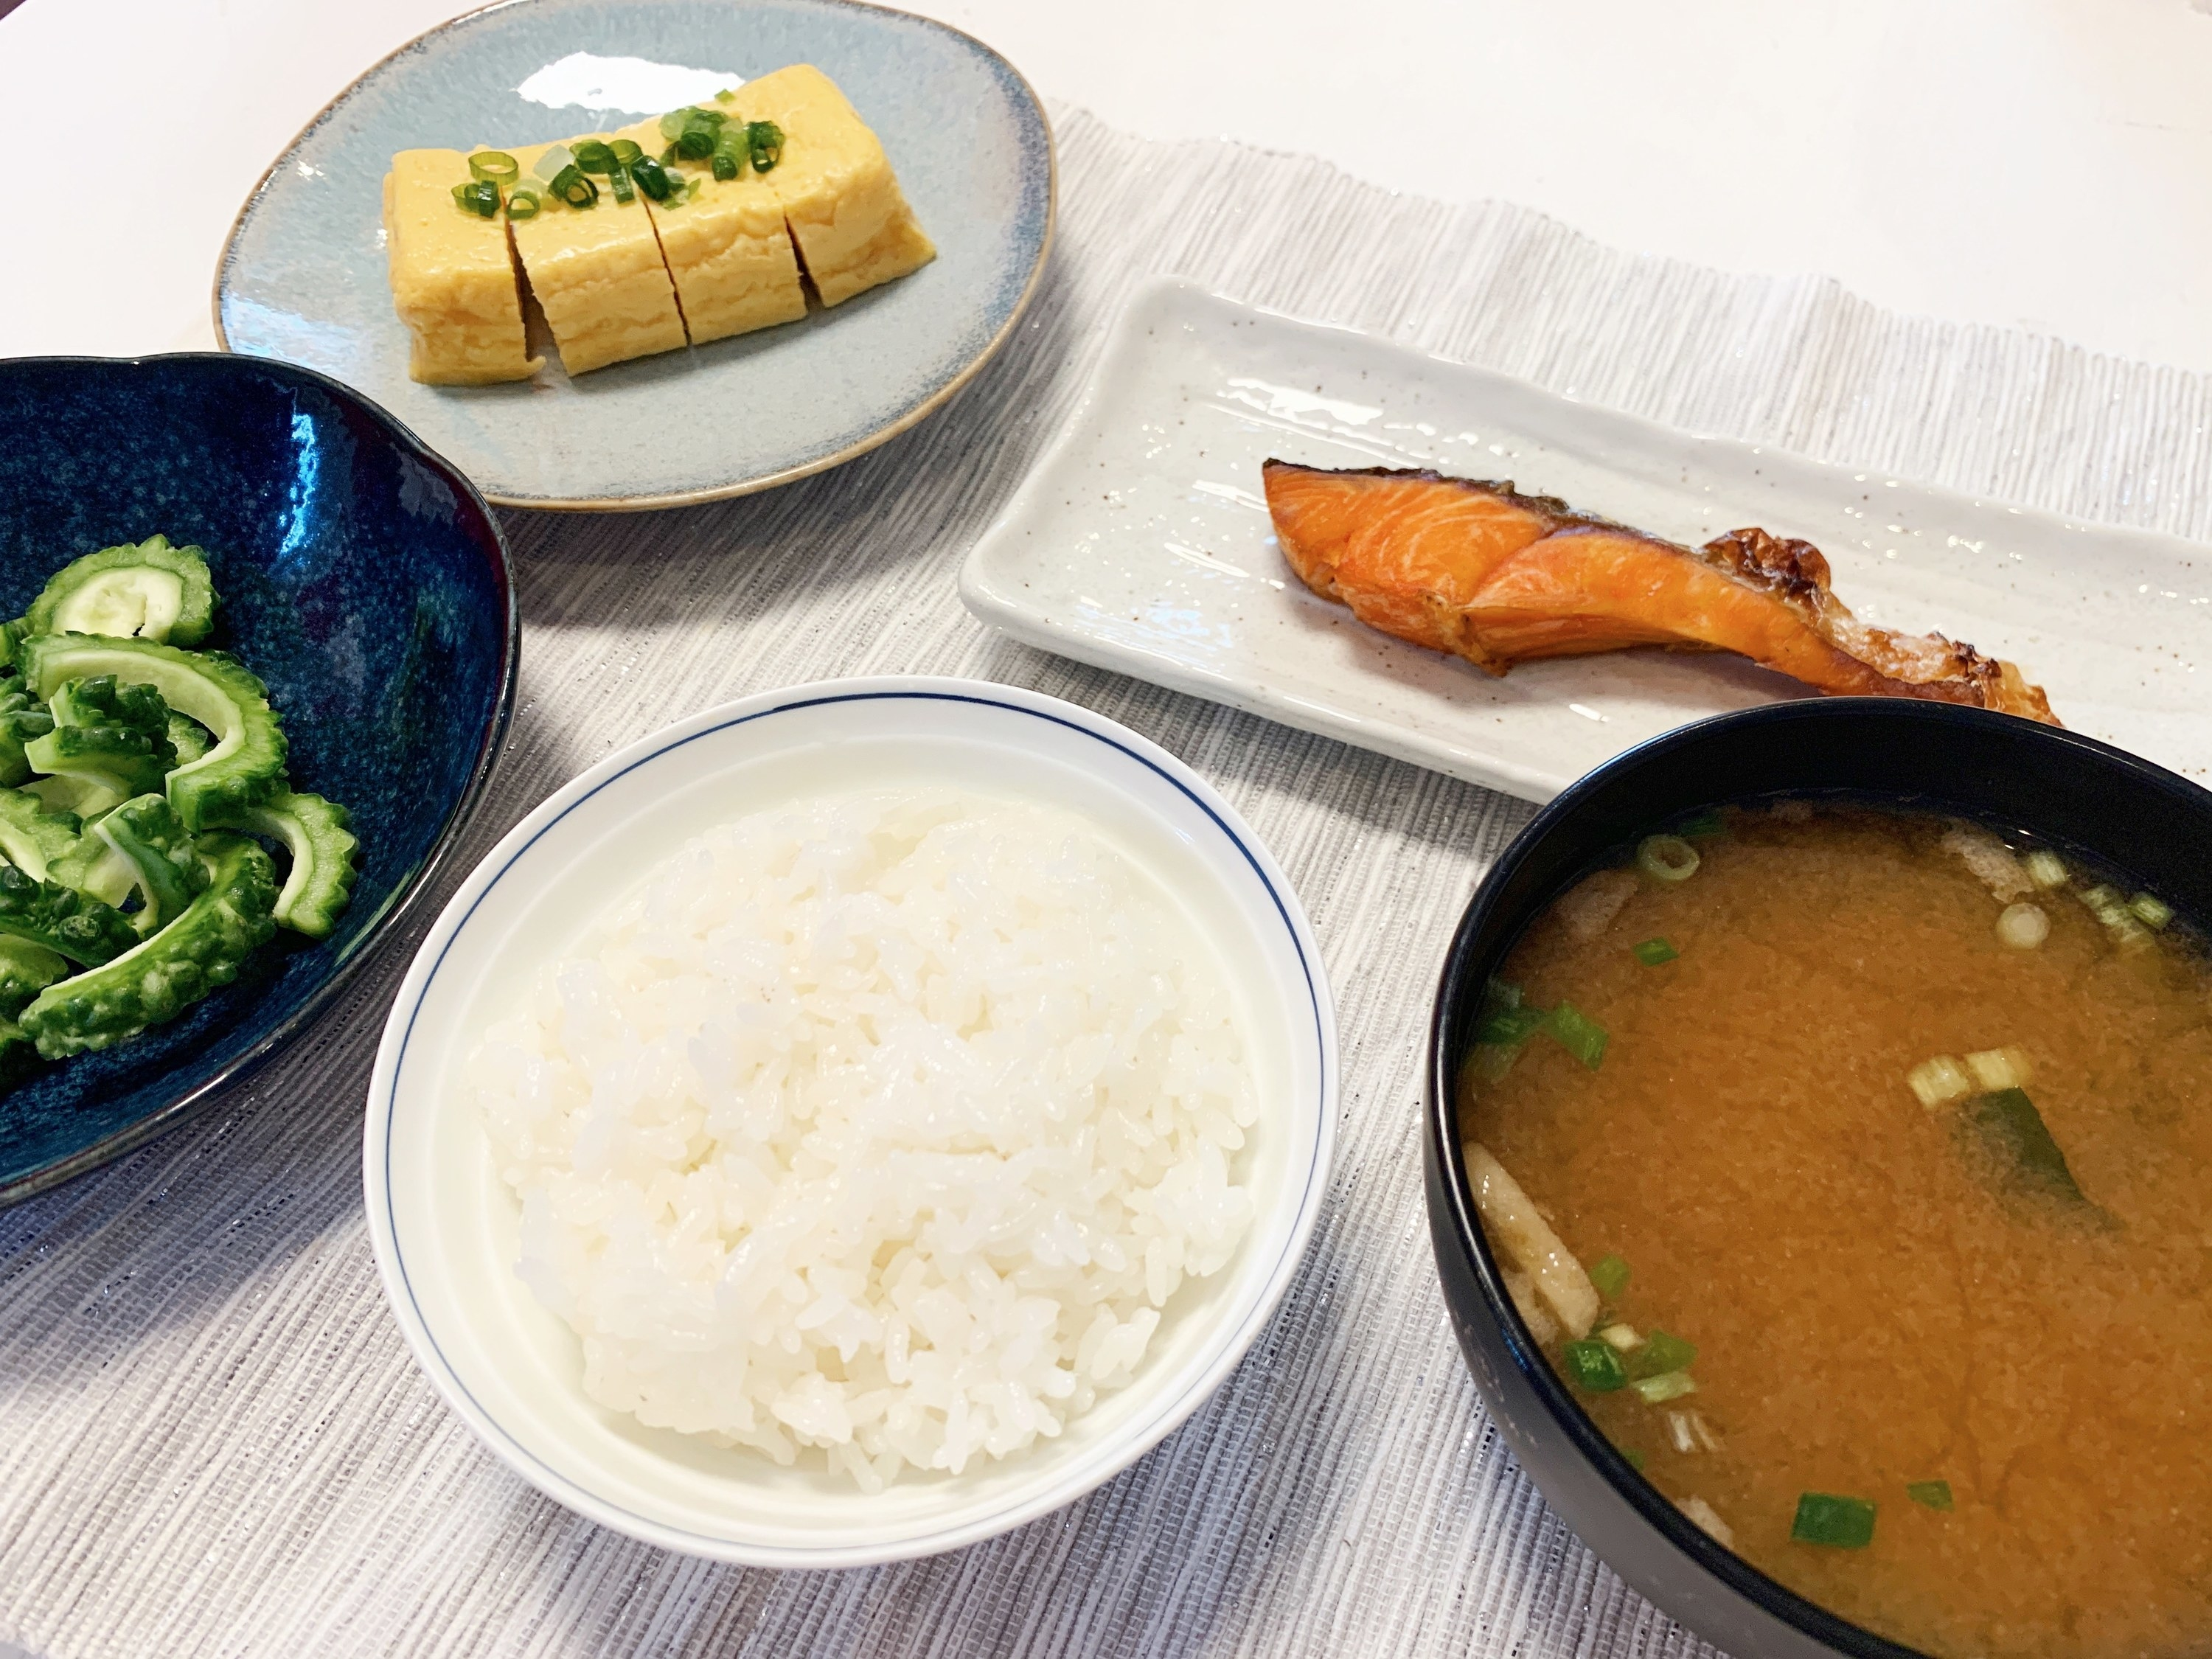 Several bowls on a table – they are filled with rice, miso soup, grilled salmon, Japanese omelette and vegetables